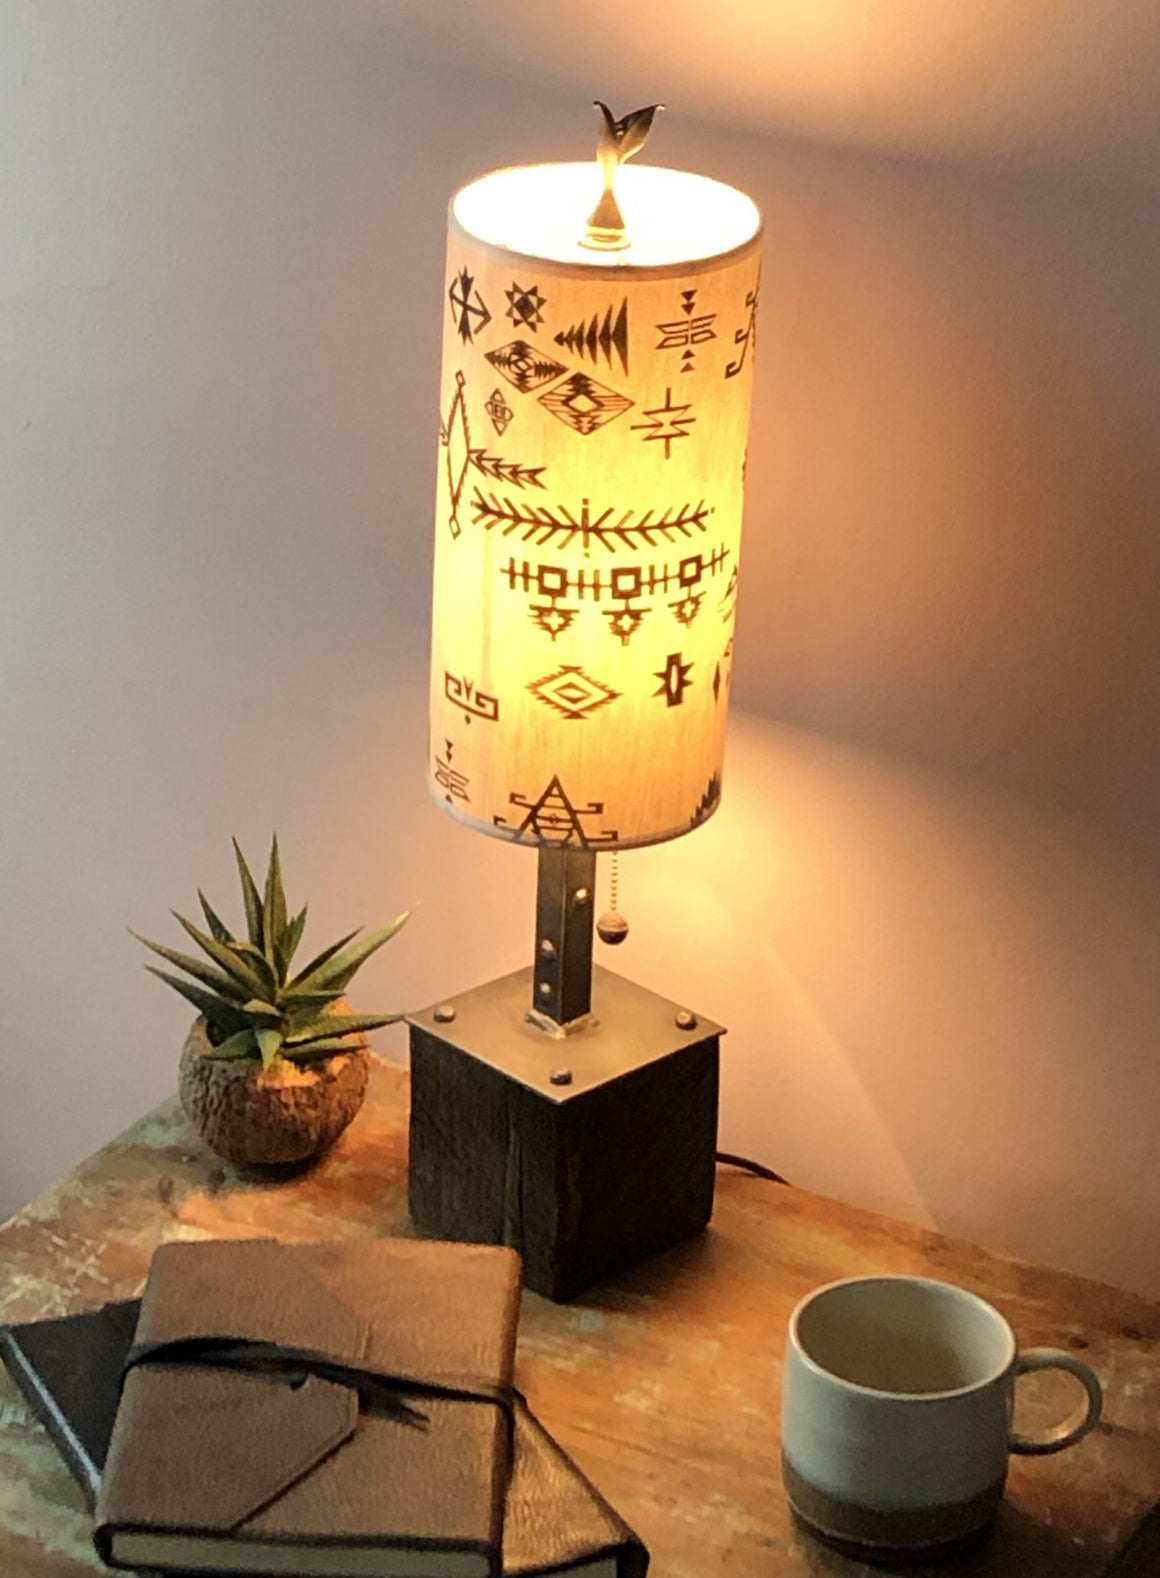 Steel Table Lamp on Reclaimed Wood with Small Tube Shade in Blanket Sketch